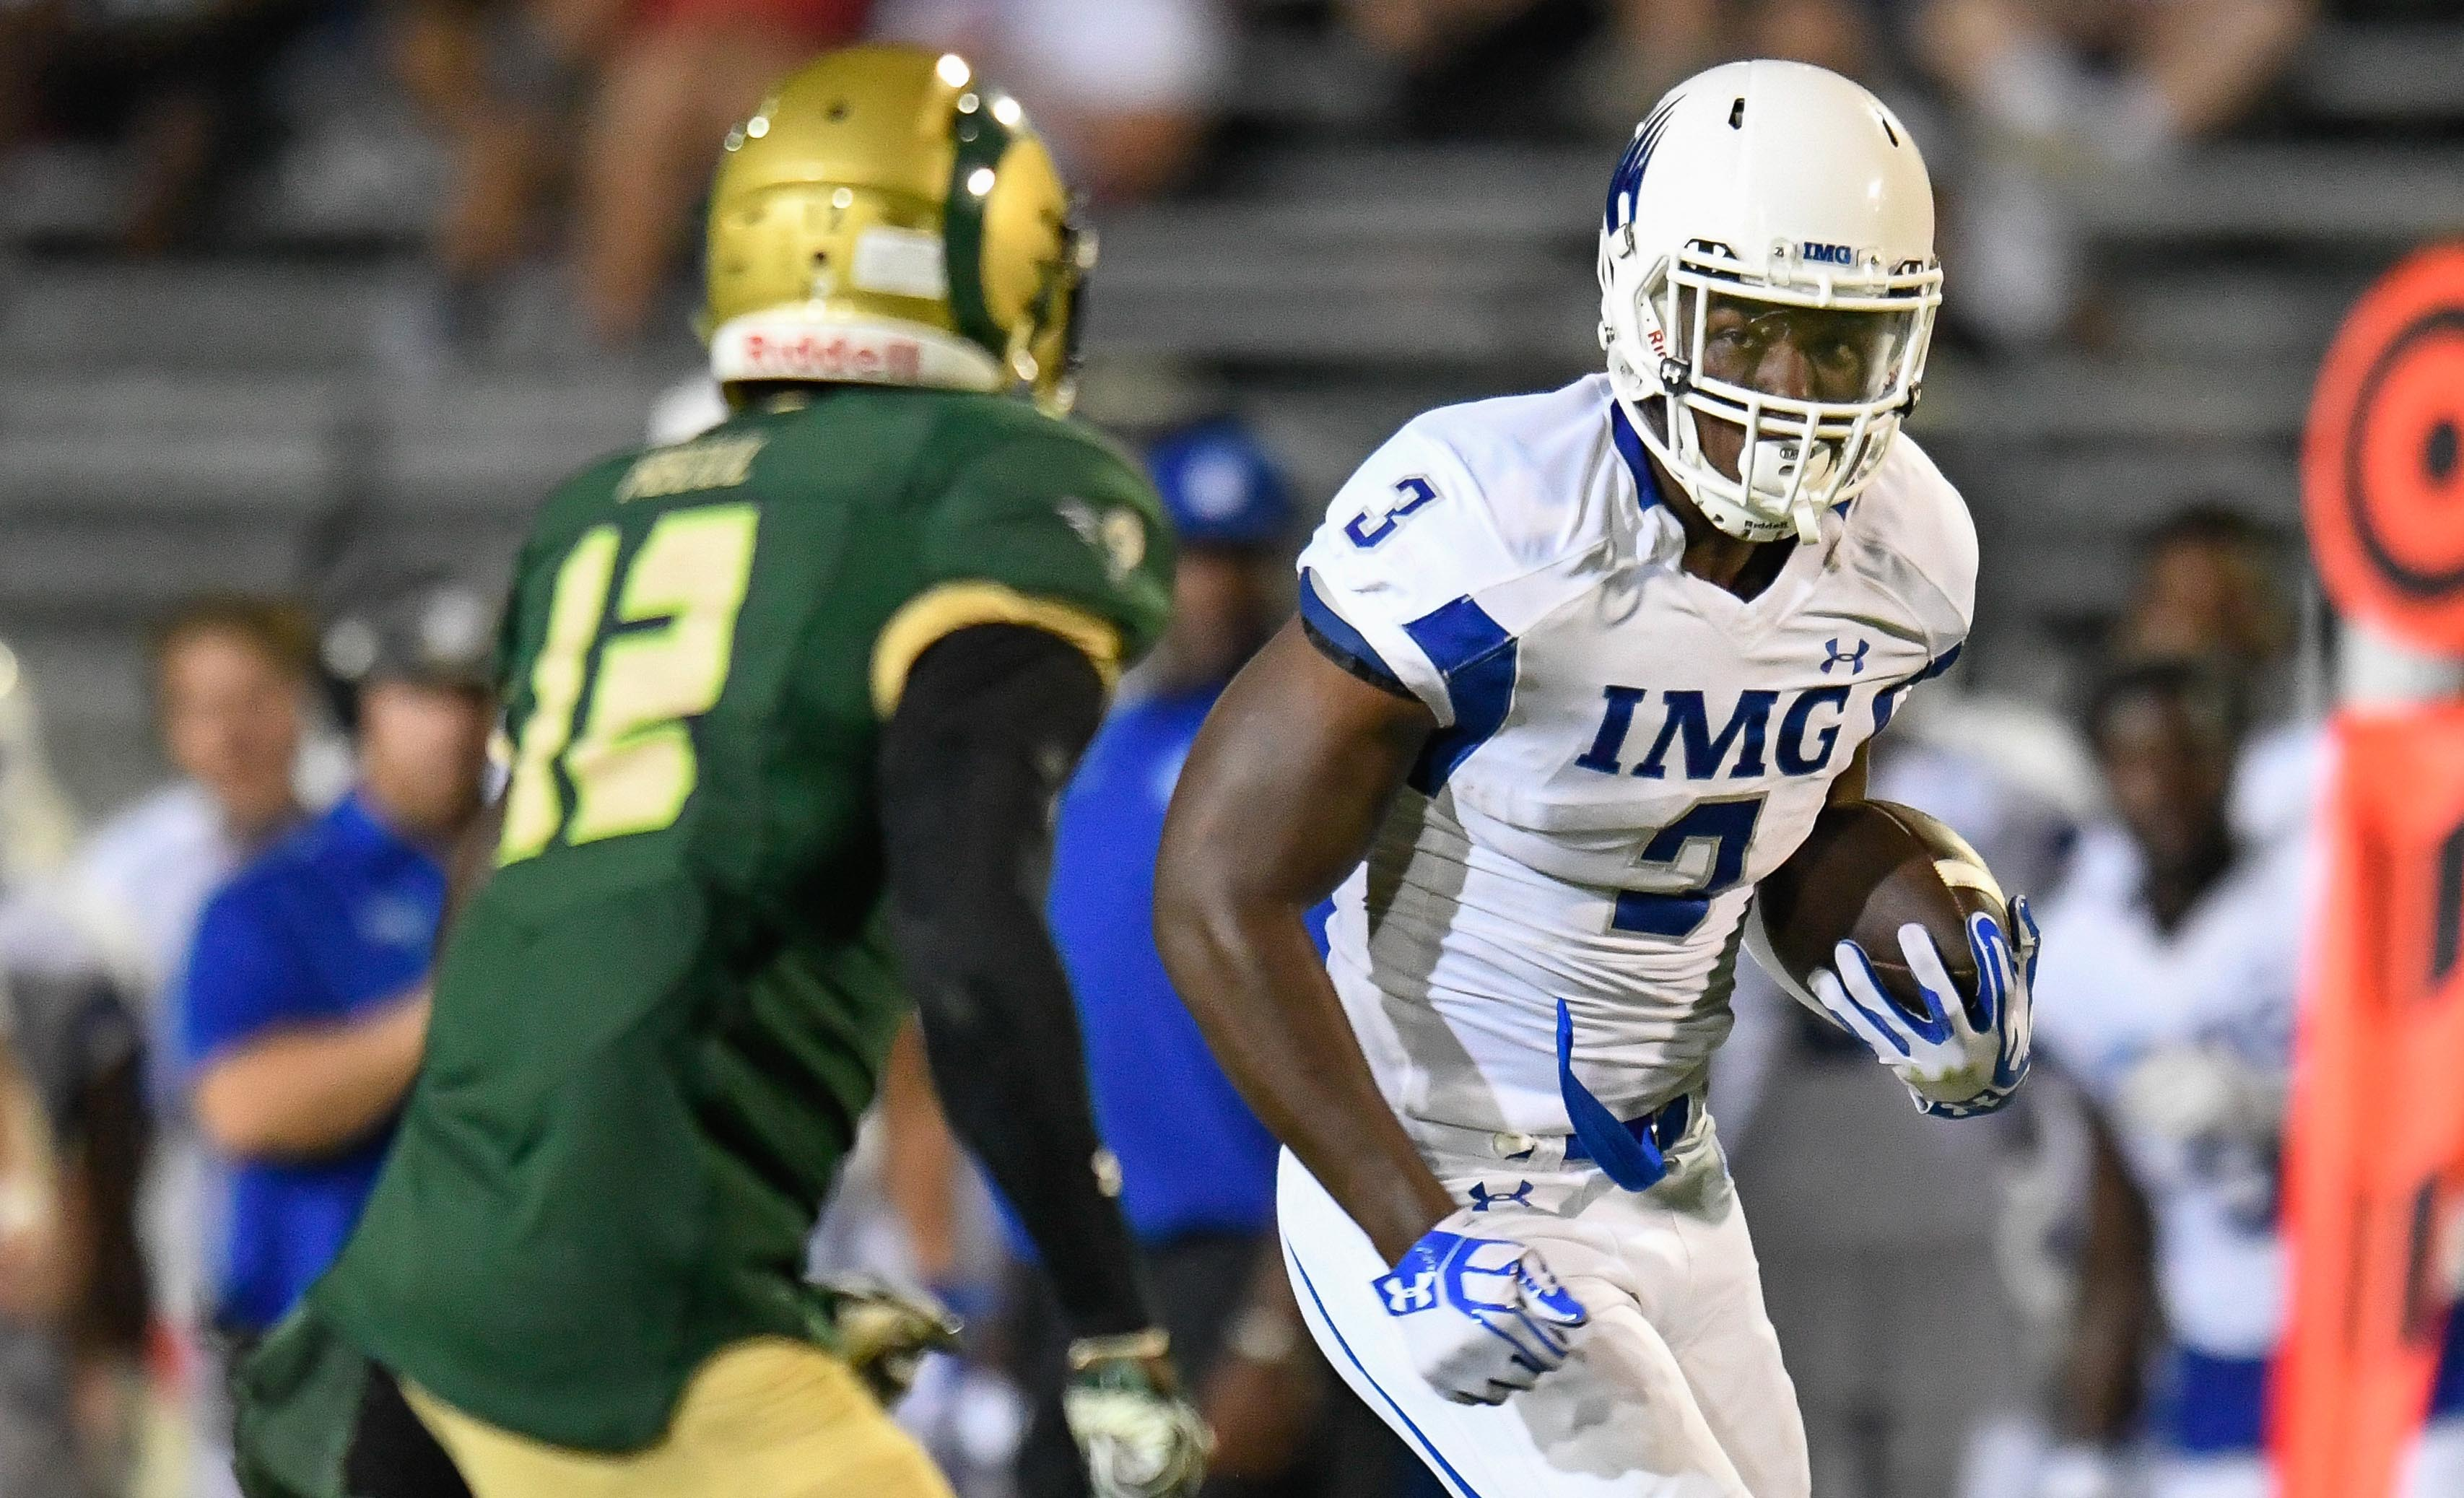 Aug 27, 2016; Loganville, GA, USA; IMG Academy receiver Tre Mckitty (3) runs after a catch against Grayson Rams Josh Stinson (12) during the second half in a high school football duel of top ranked teams at Grayson Community Stadium. IMG Academy defeated the Grayson Rams 26-7. Mandatory Credit: Dale Zanine-USA TODAY Sports ORIG FILE ID: 20160827_sal_sz2_197.JPG